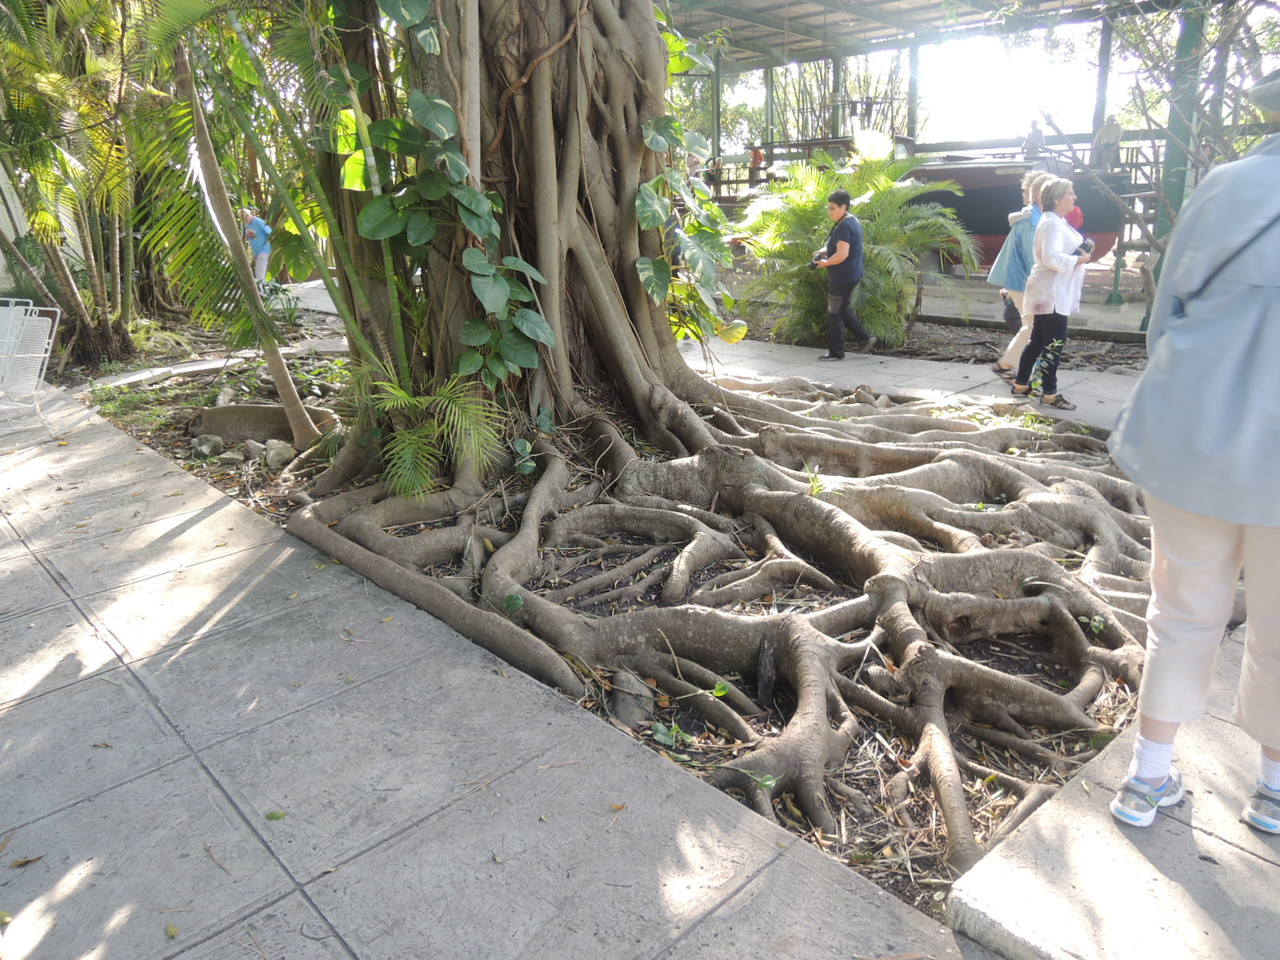 Tree roots near the swimming pool, with Hemingway's fishing boat in the background.